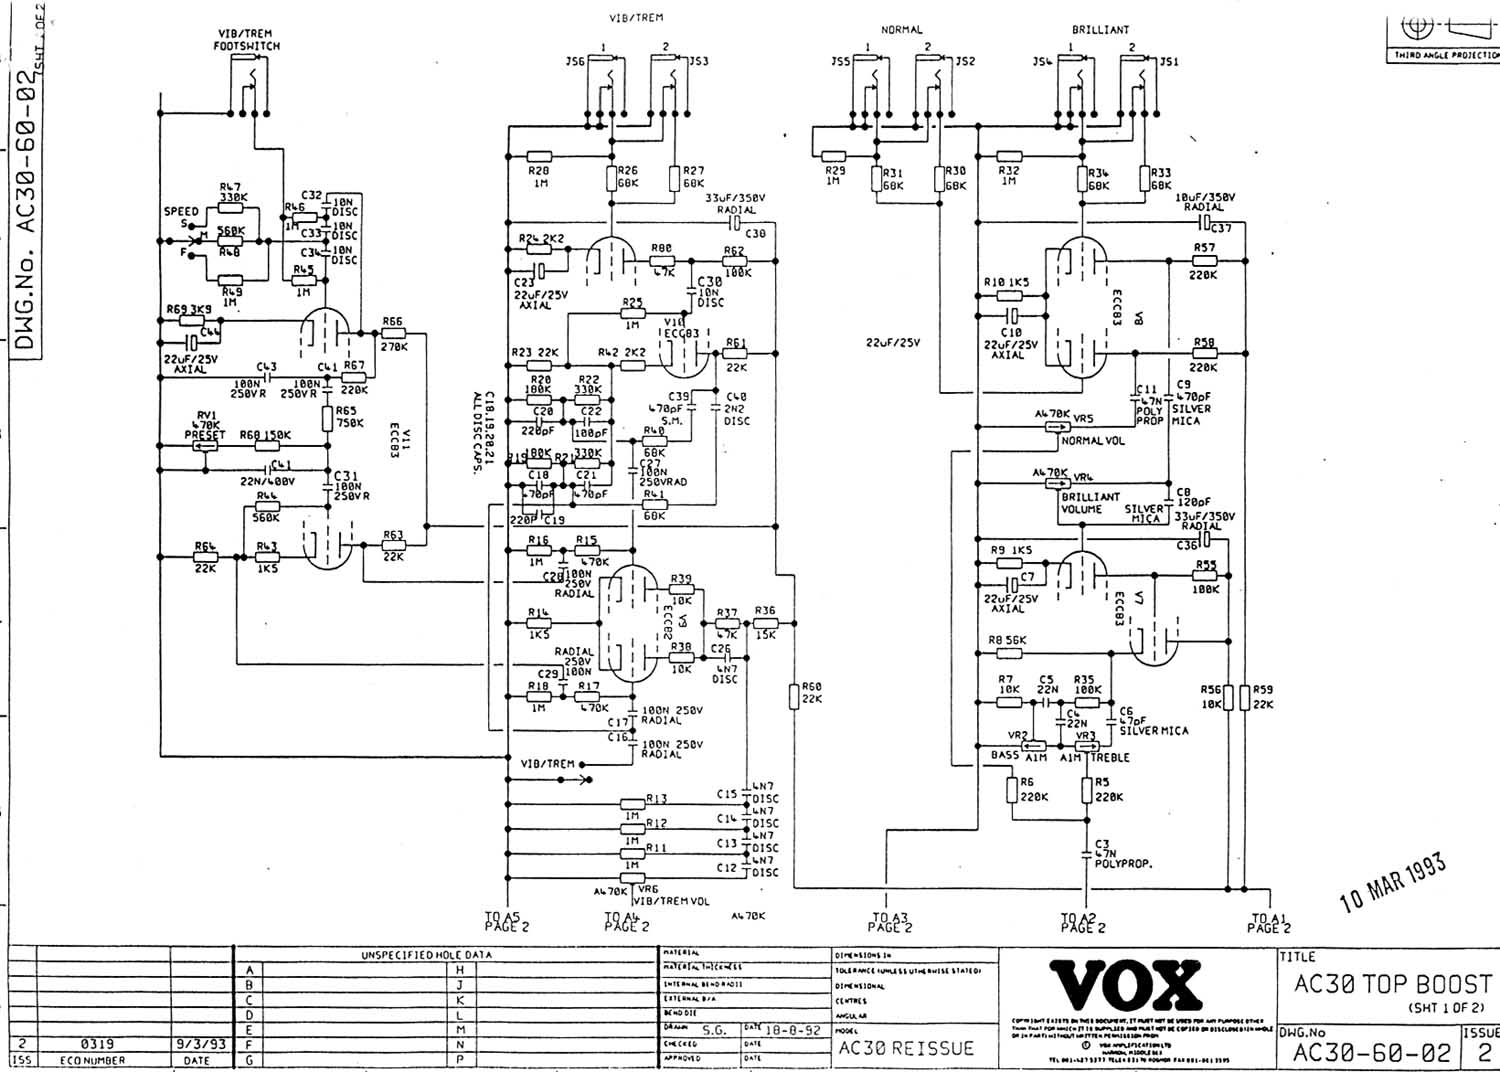 ac3093pr 64 ac10 wiring diagram parker ac10 software \u2022 wiring diagram  at soozxer.org